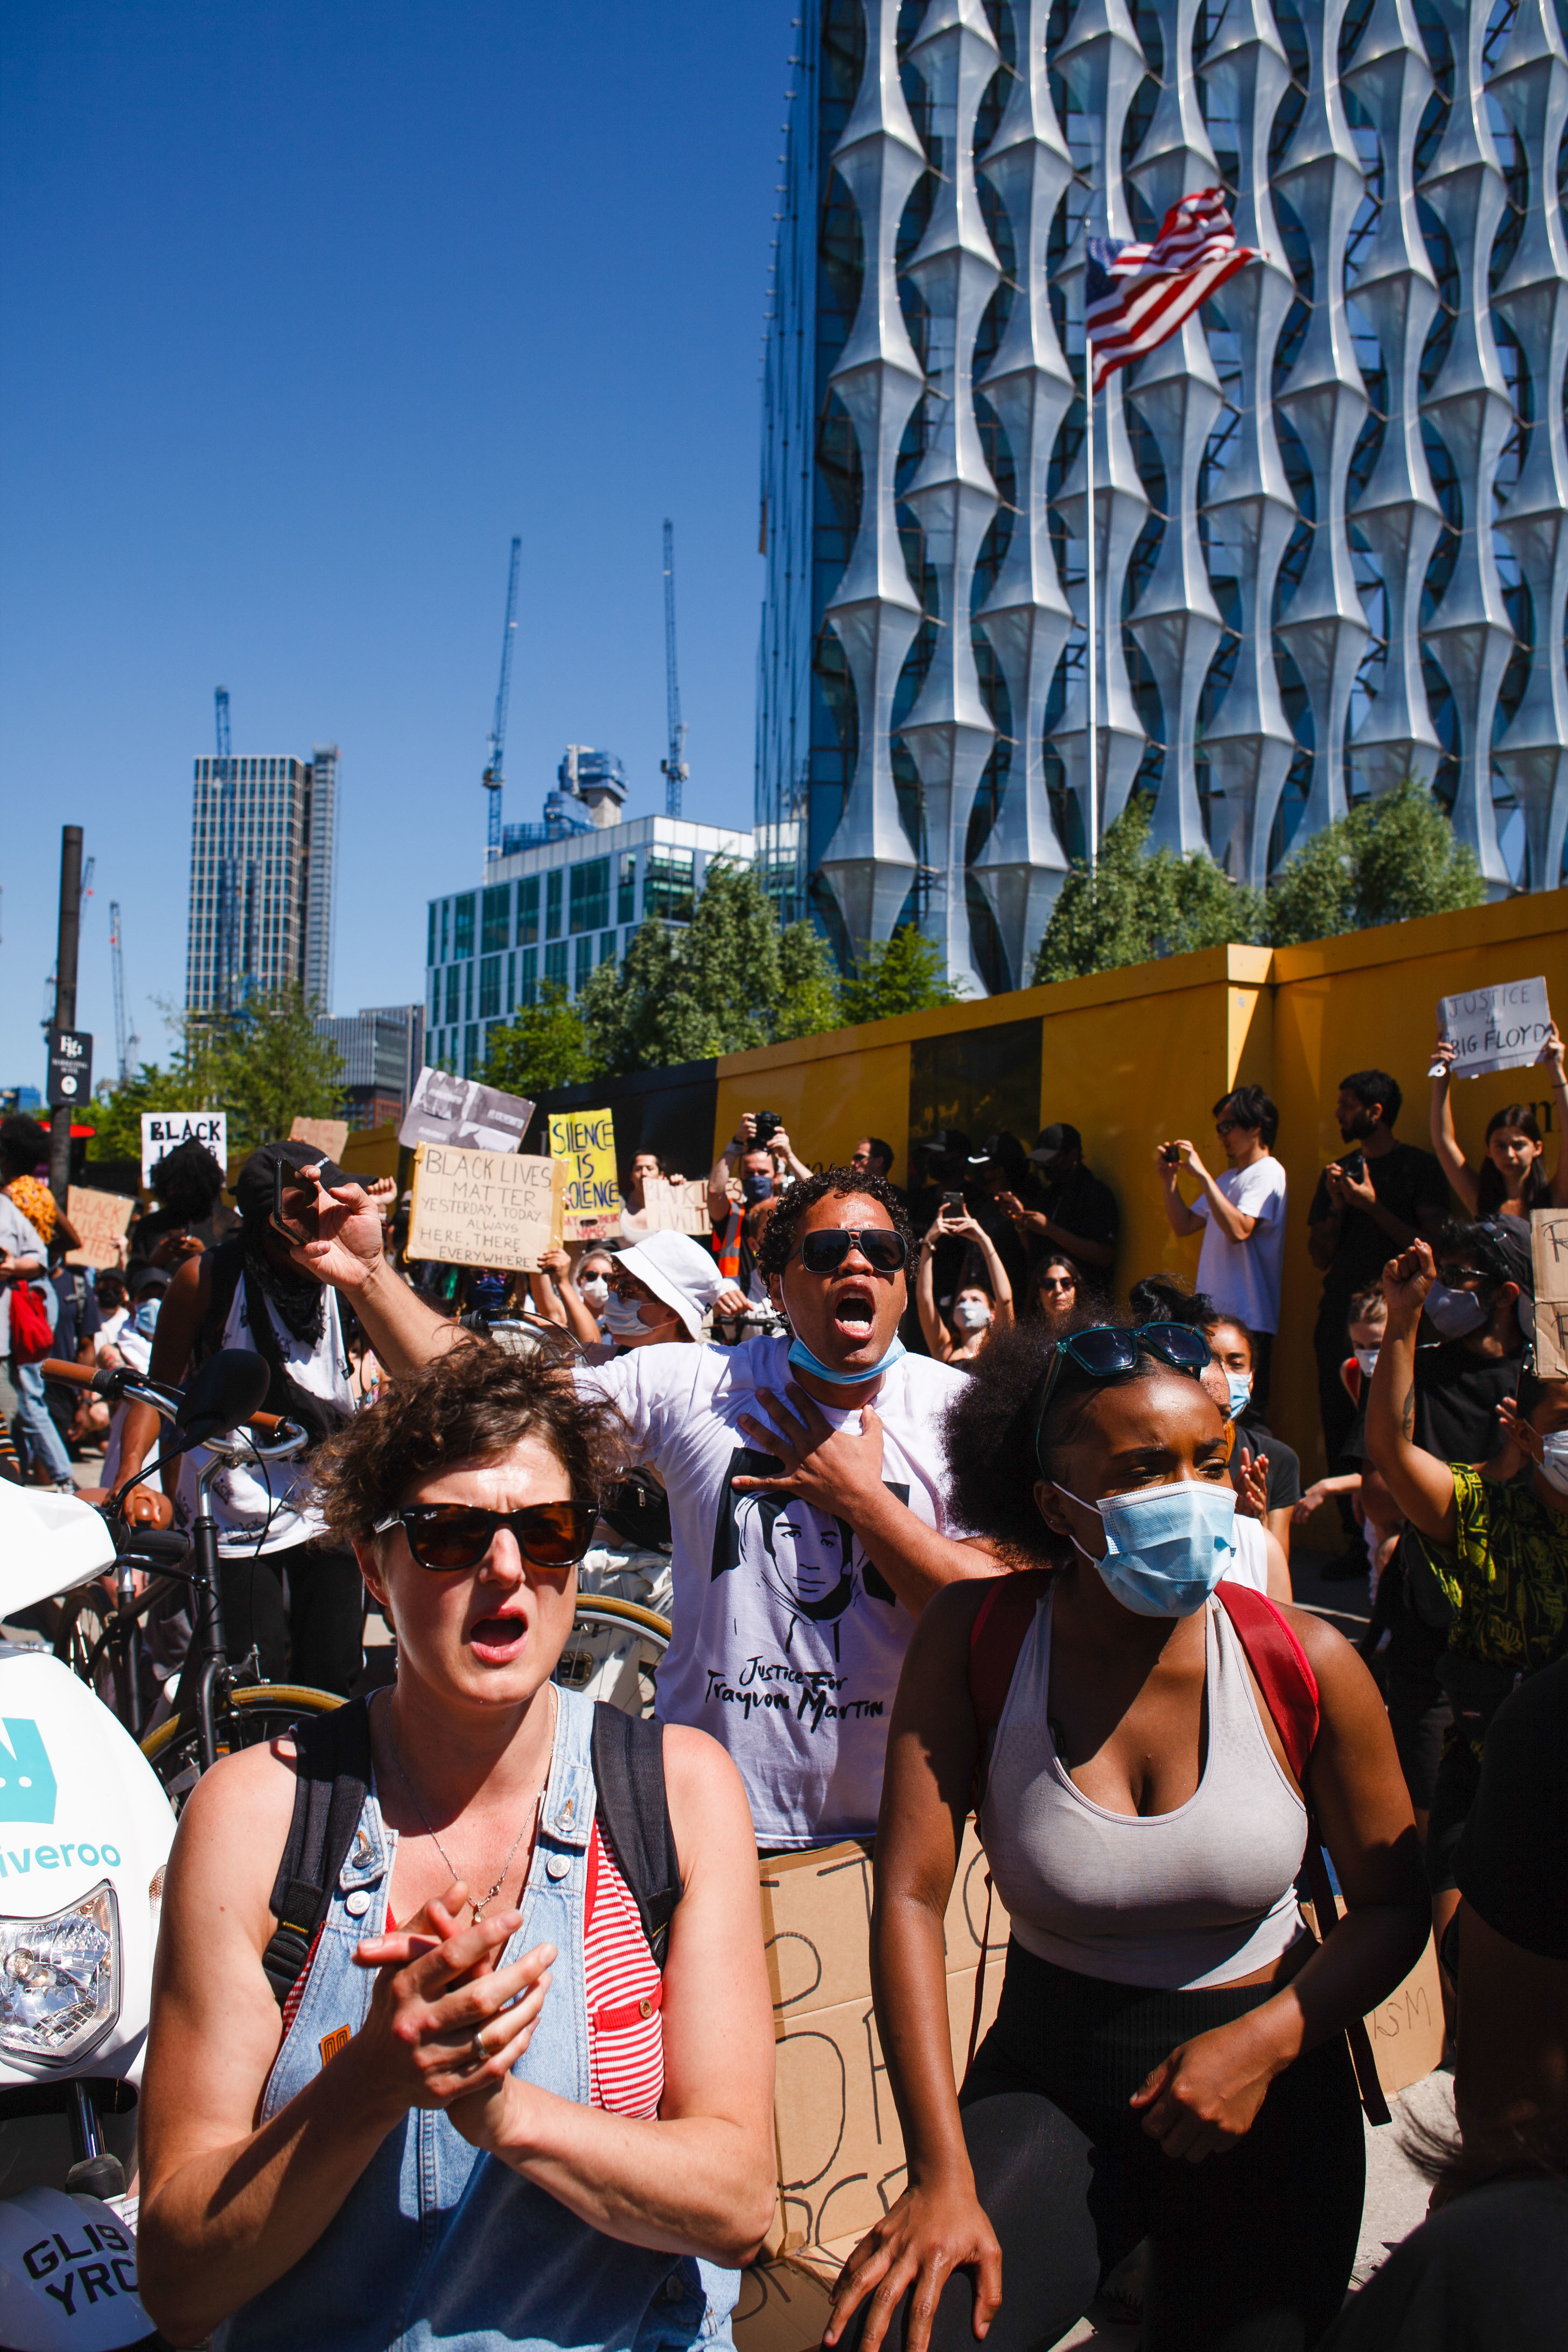 Activists gathered chanting slogans at the US embassy during the George Floyd demonstration. Thousands came together for the protest, despite ongoing concerns over the possible spread of coronavirus and continuing calls by authorities for social distancing guidelines to be adhered to. Floyd, a black man, died as a white police officer, Derek Chauvin, knelt on his neck during an arrest in the US city of Minneapolis on May 25. Floyd's death, reminiscent of the chokehold death of Eric Garner at the hands of police officers in New York in 2014, has reignited the 'Black Lives Matter' movement against police brutality in the US, and left Minneapolis and major cities from coast to coast reeling from nights of rioting. (Photo by David Cliff / SOPA Images/Sipa USA)